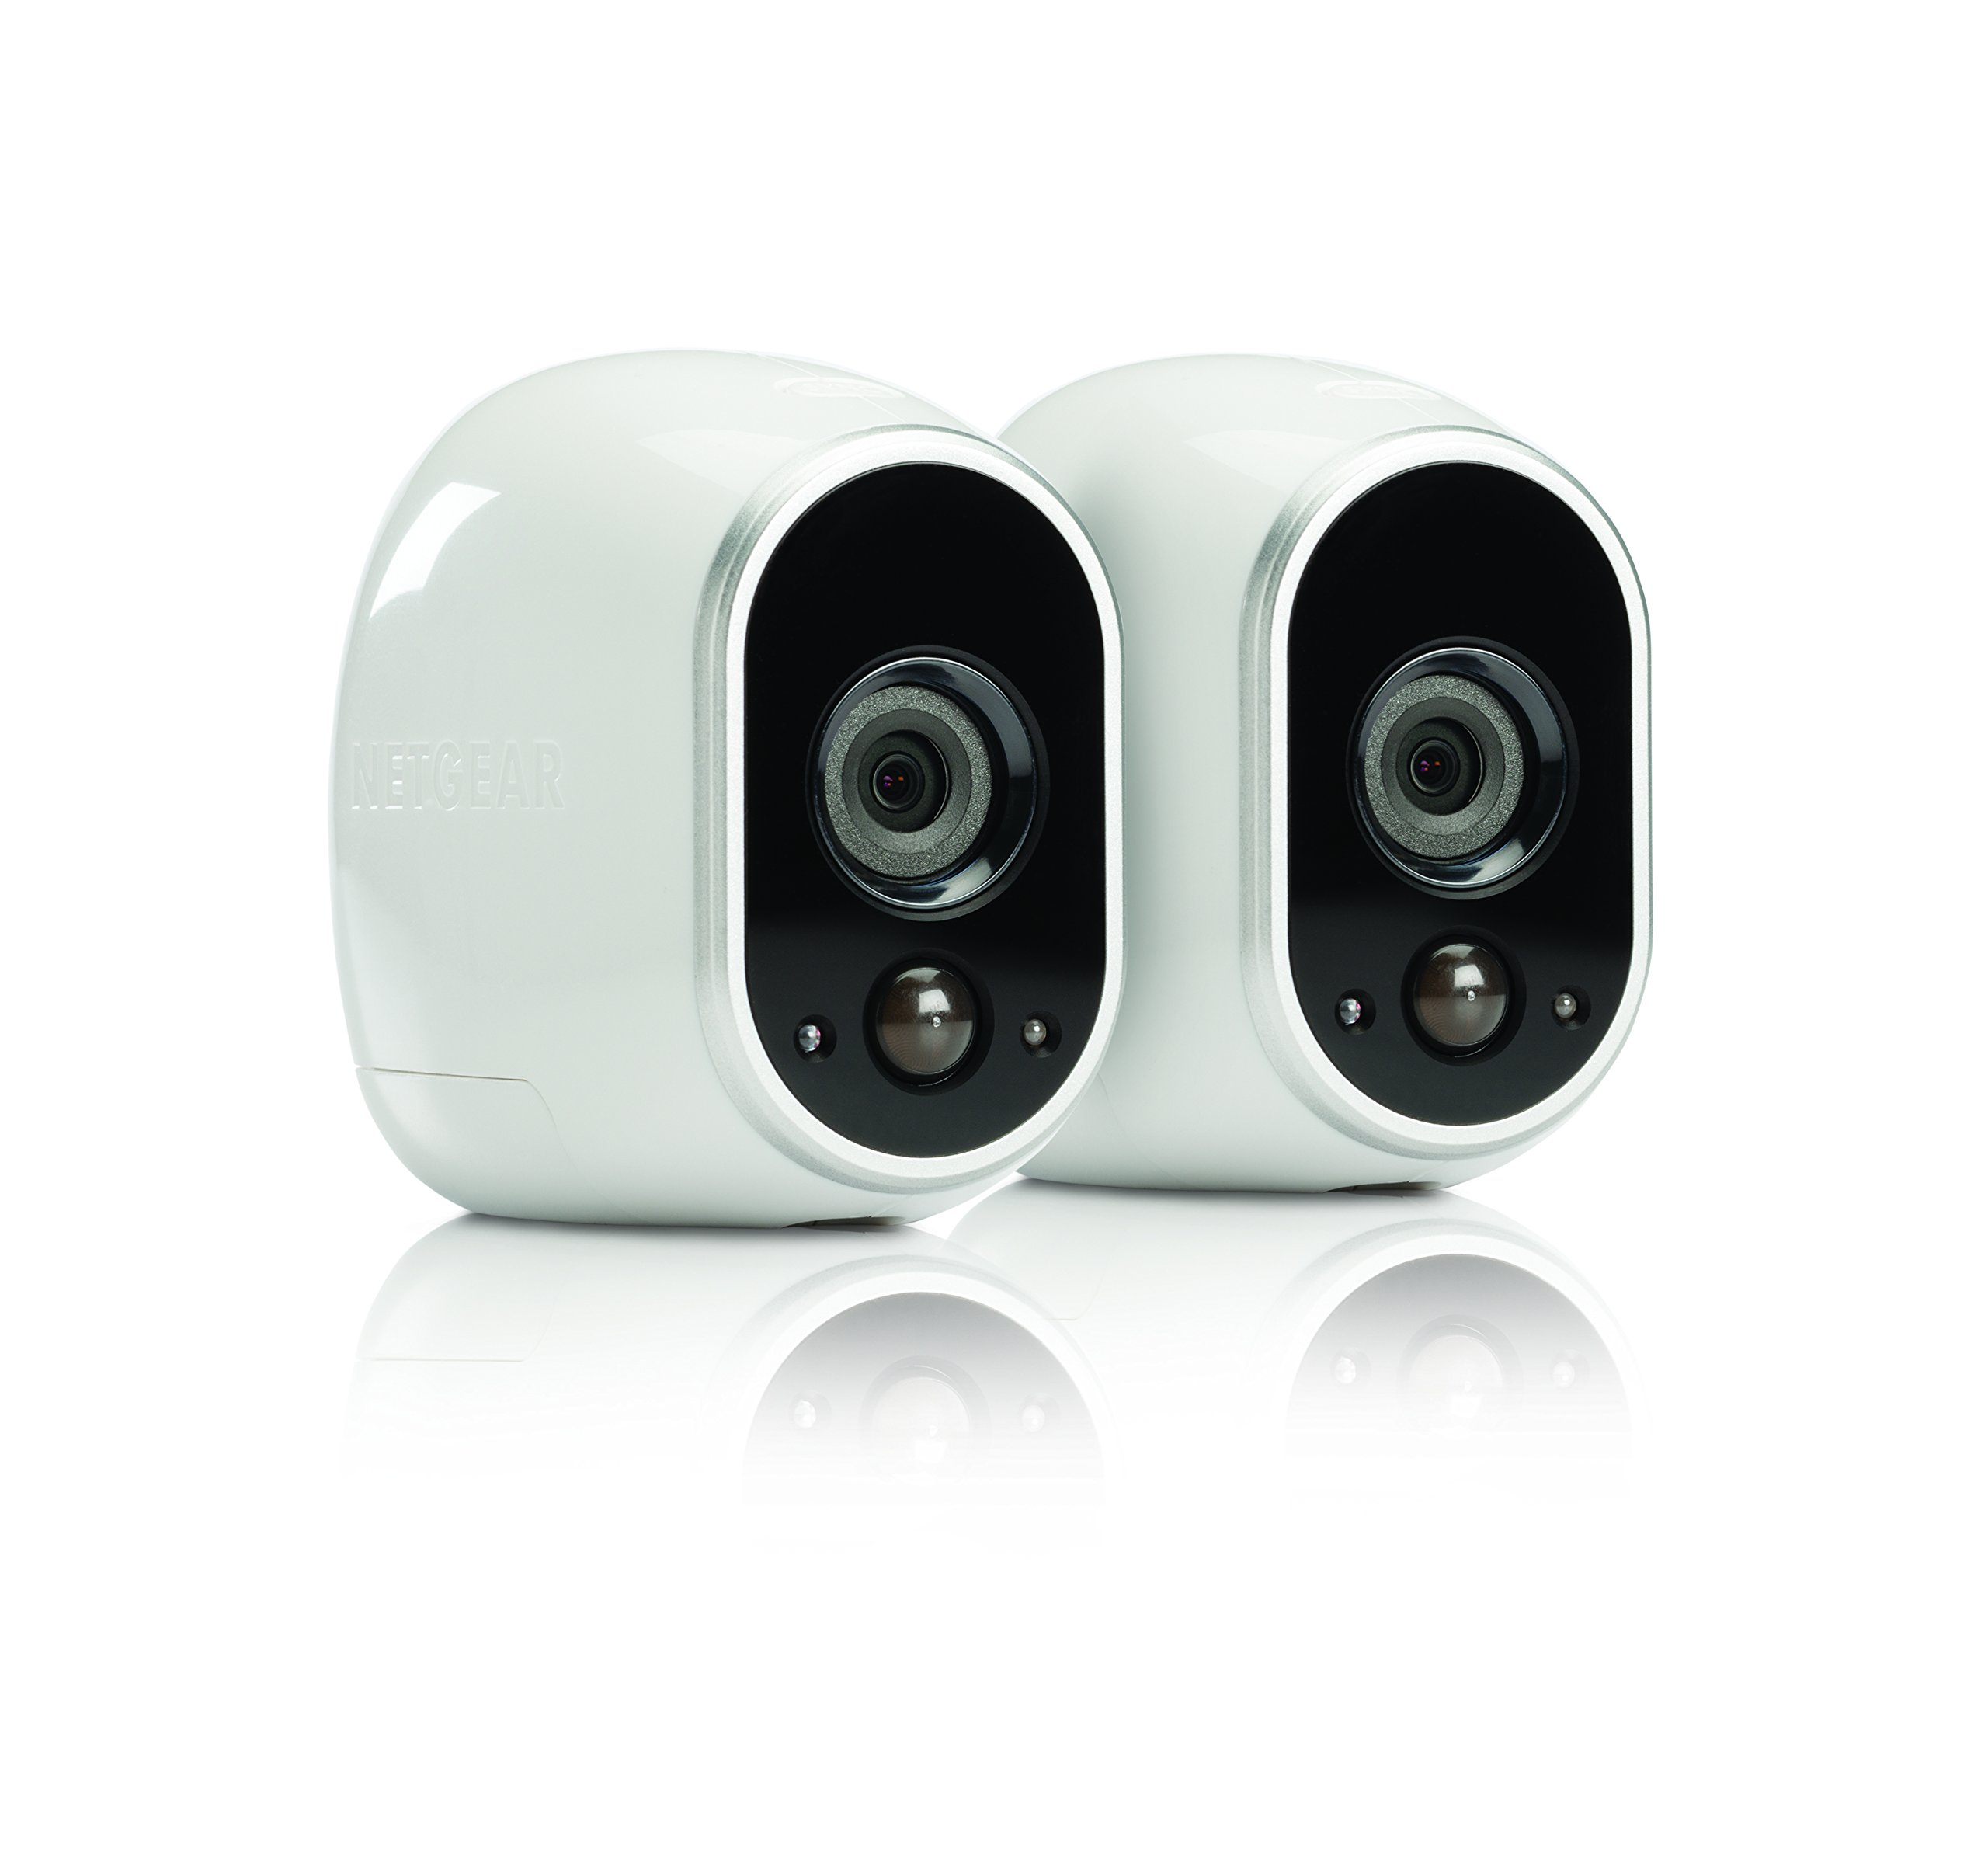 Arlo - Wireless Home Security Camera System   Indoor/Outdoor   2 camera kit (Discontinued) by Arlo Technologies, Inc